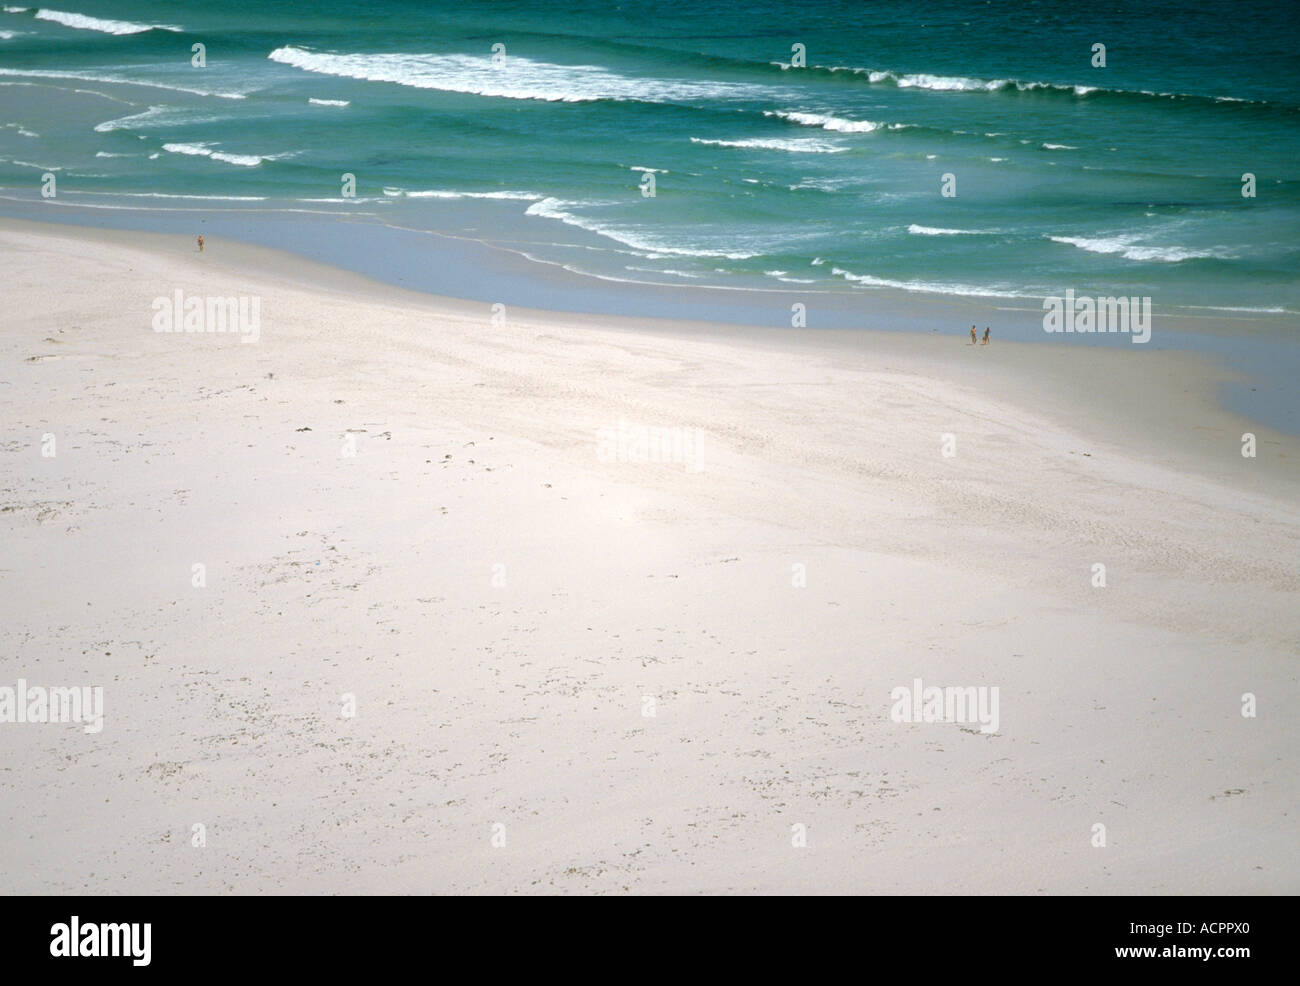 South Africa, Nordhoek near Kapstadt, sandy beach - Stock Image